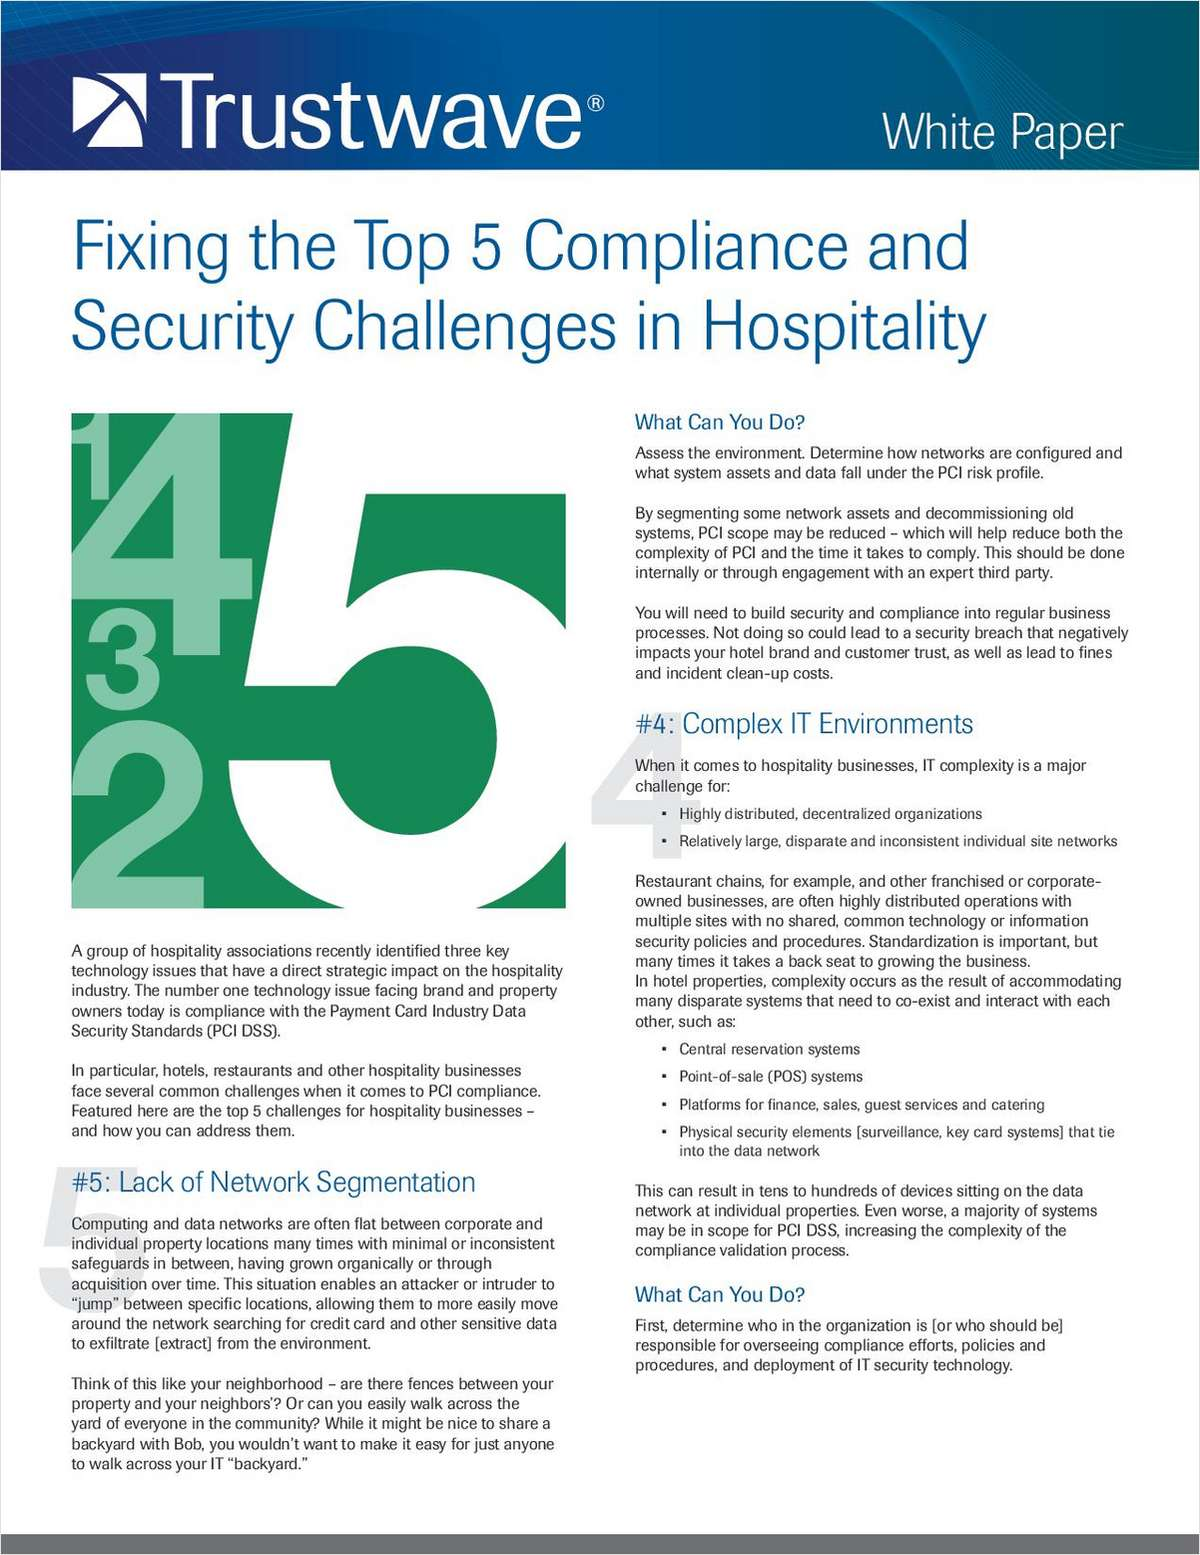 Fixing the Top 5 Compliance and Security Challenges in Hospitality